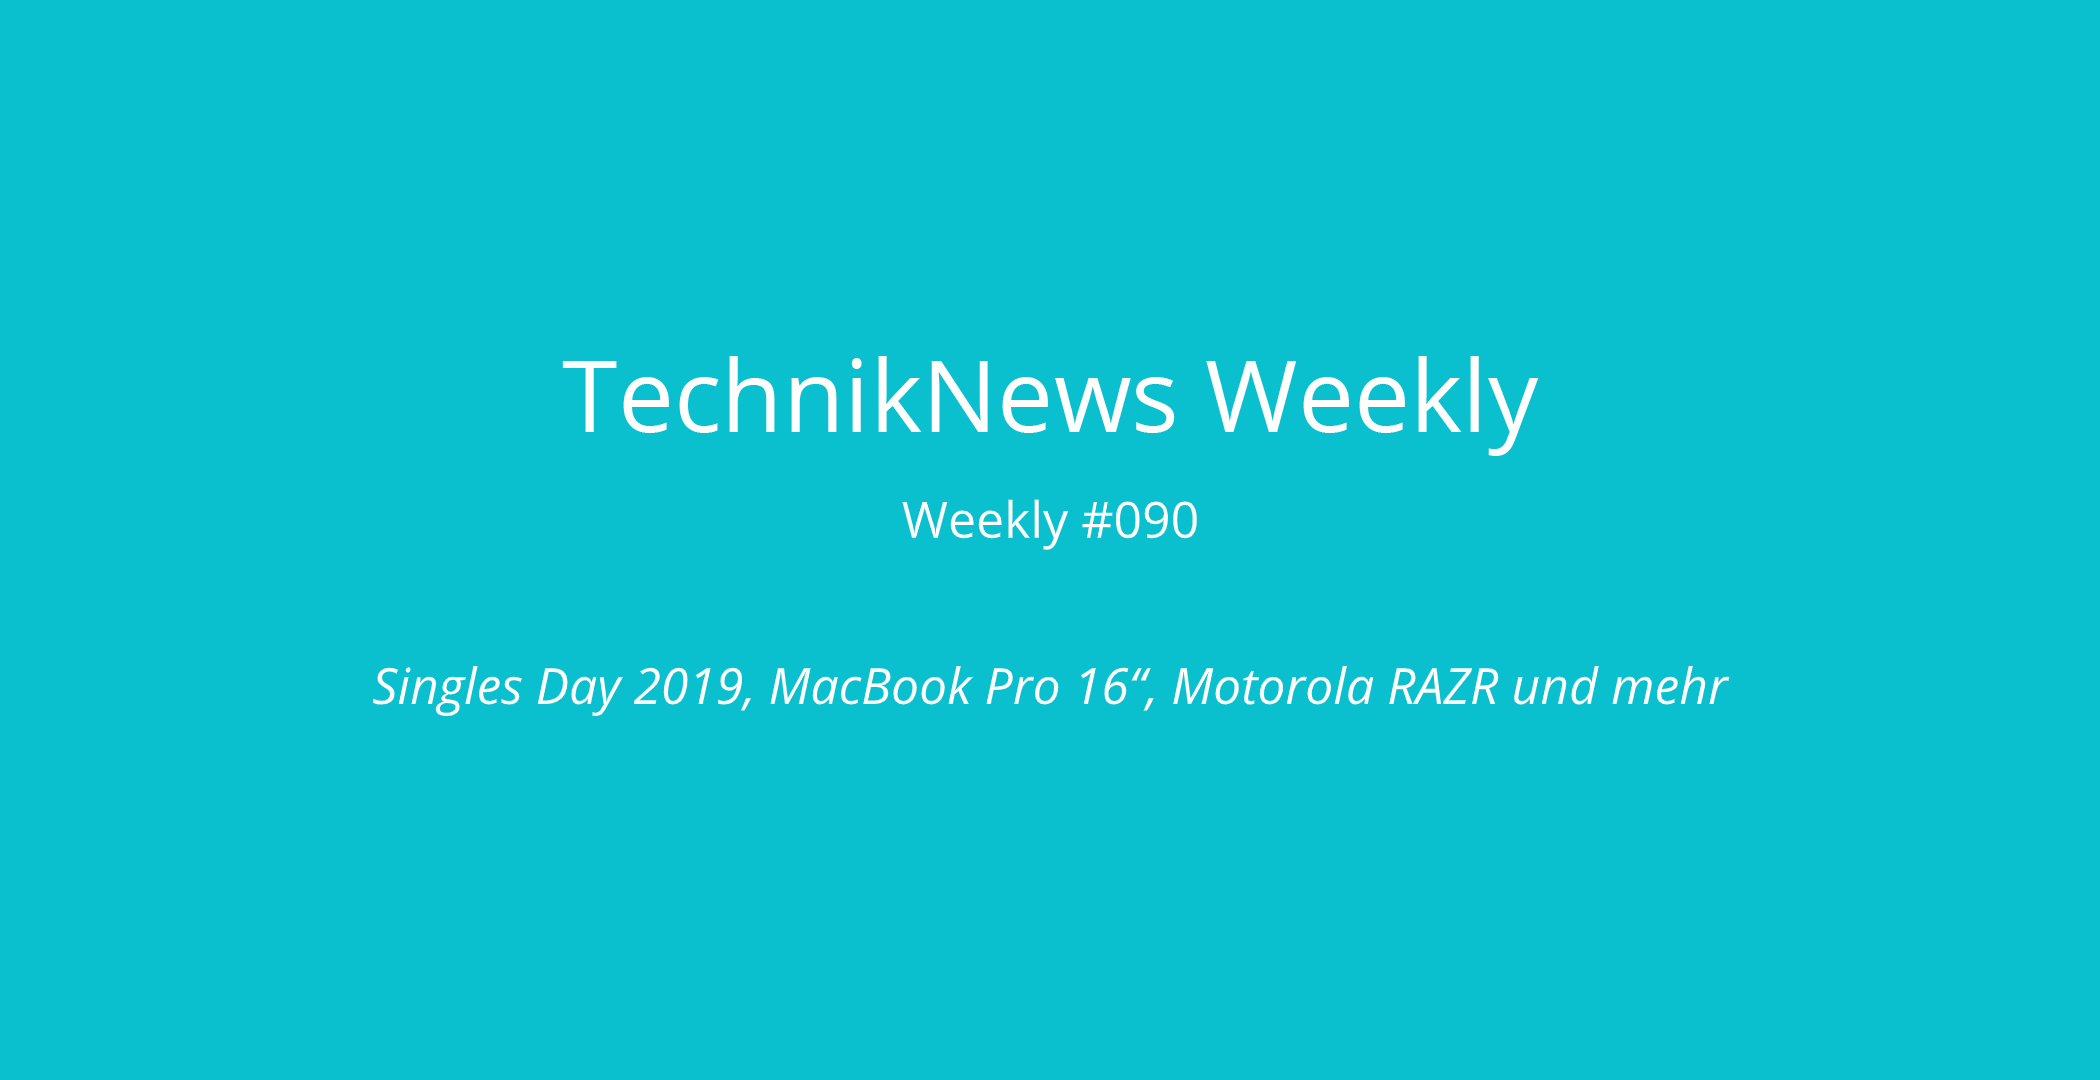 "TechnikNews Weekly #090: Singles Day 2019, MacBook Pro 16"", Motorola RAZR und mehr"